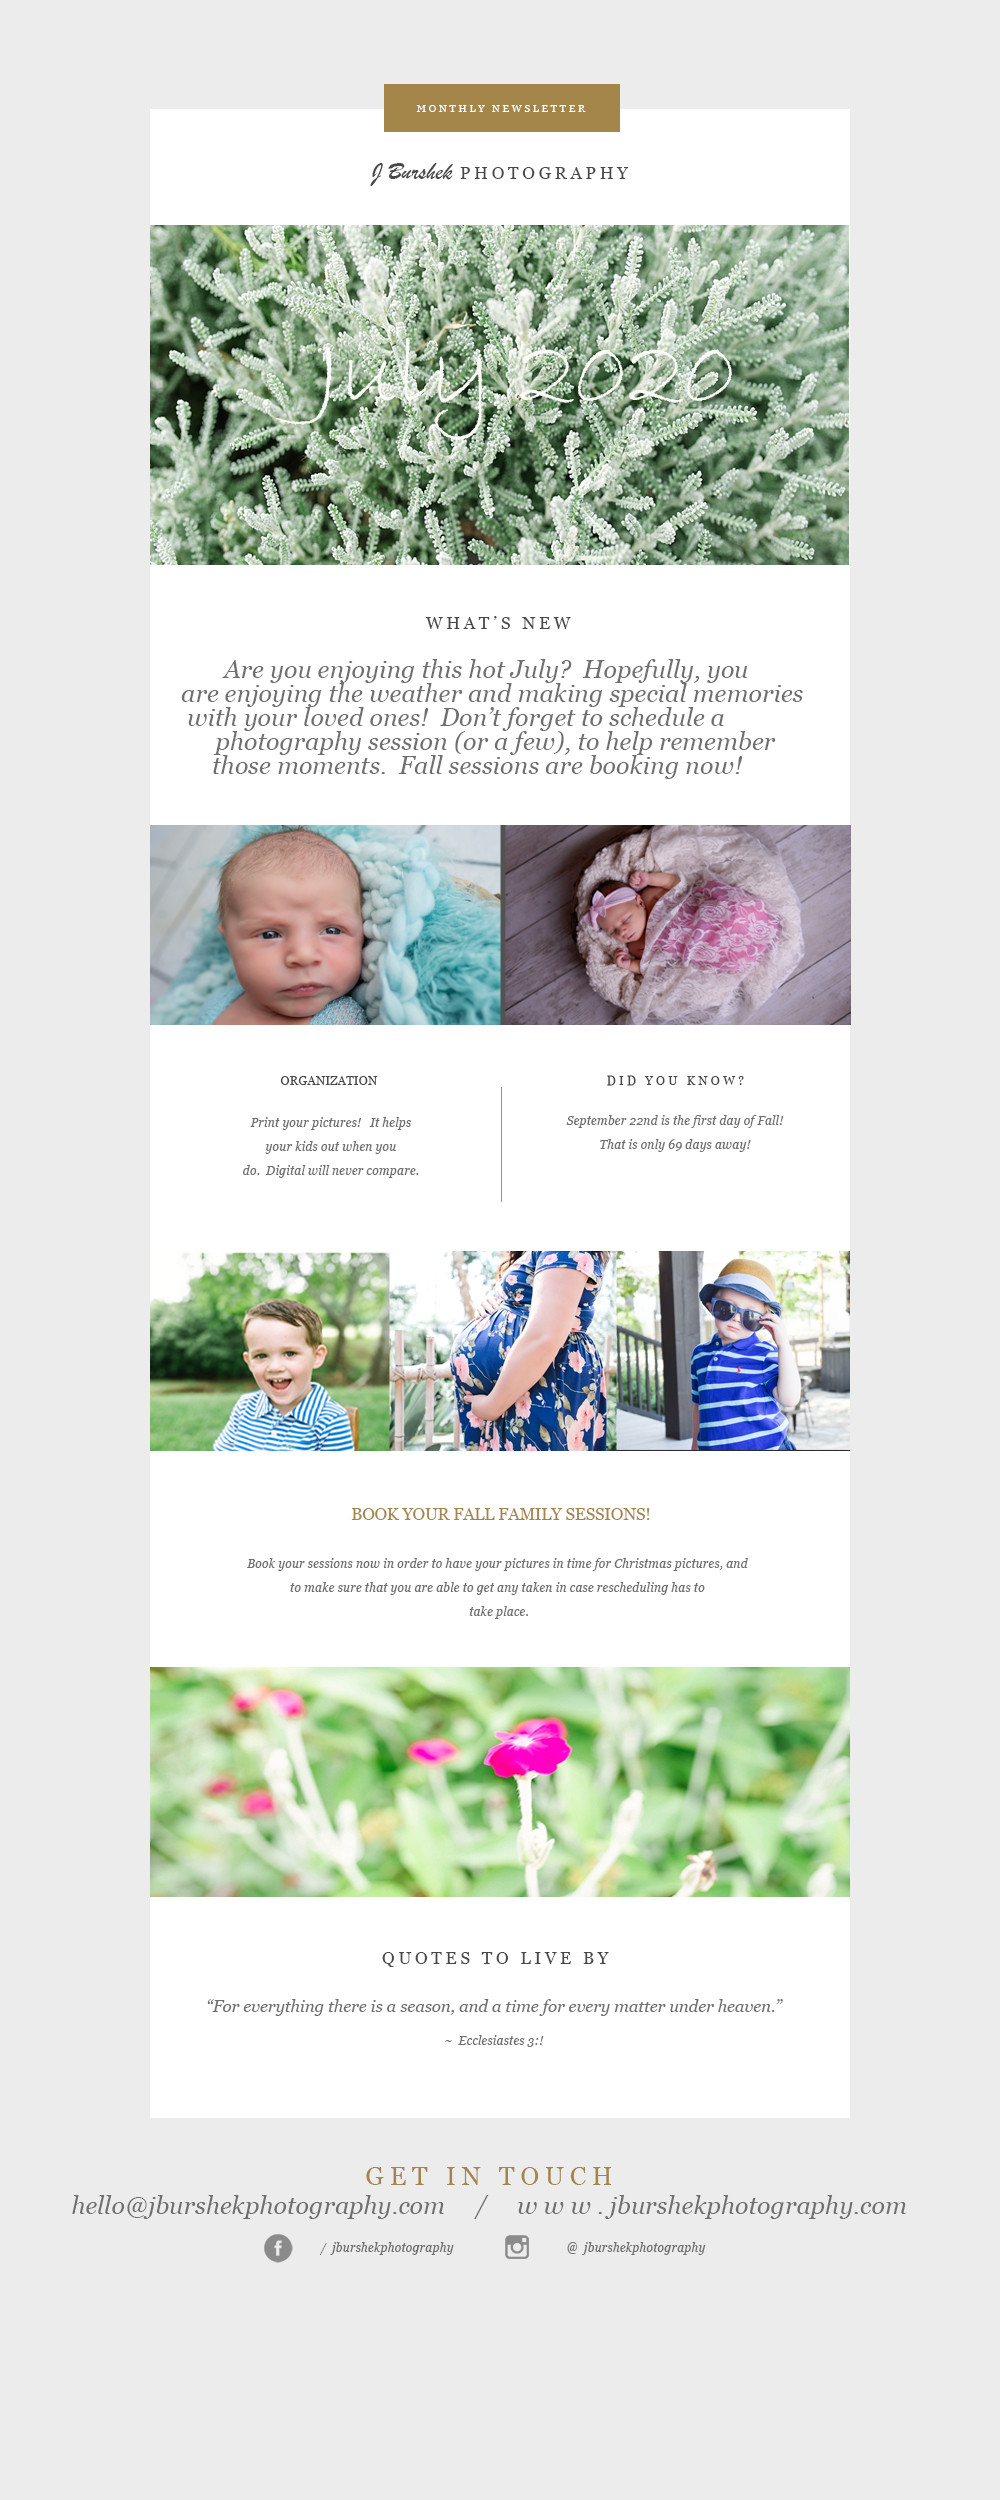 July Newsletter, J Burshek Photography, Flowers, Edmond, Oklahoma, Photographer, Fall Sessions, Family Photographer, Style, Kid Photographer, Maternity Pictures, Organizational Tips, Photography Tips, Tips